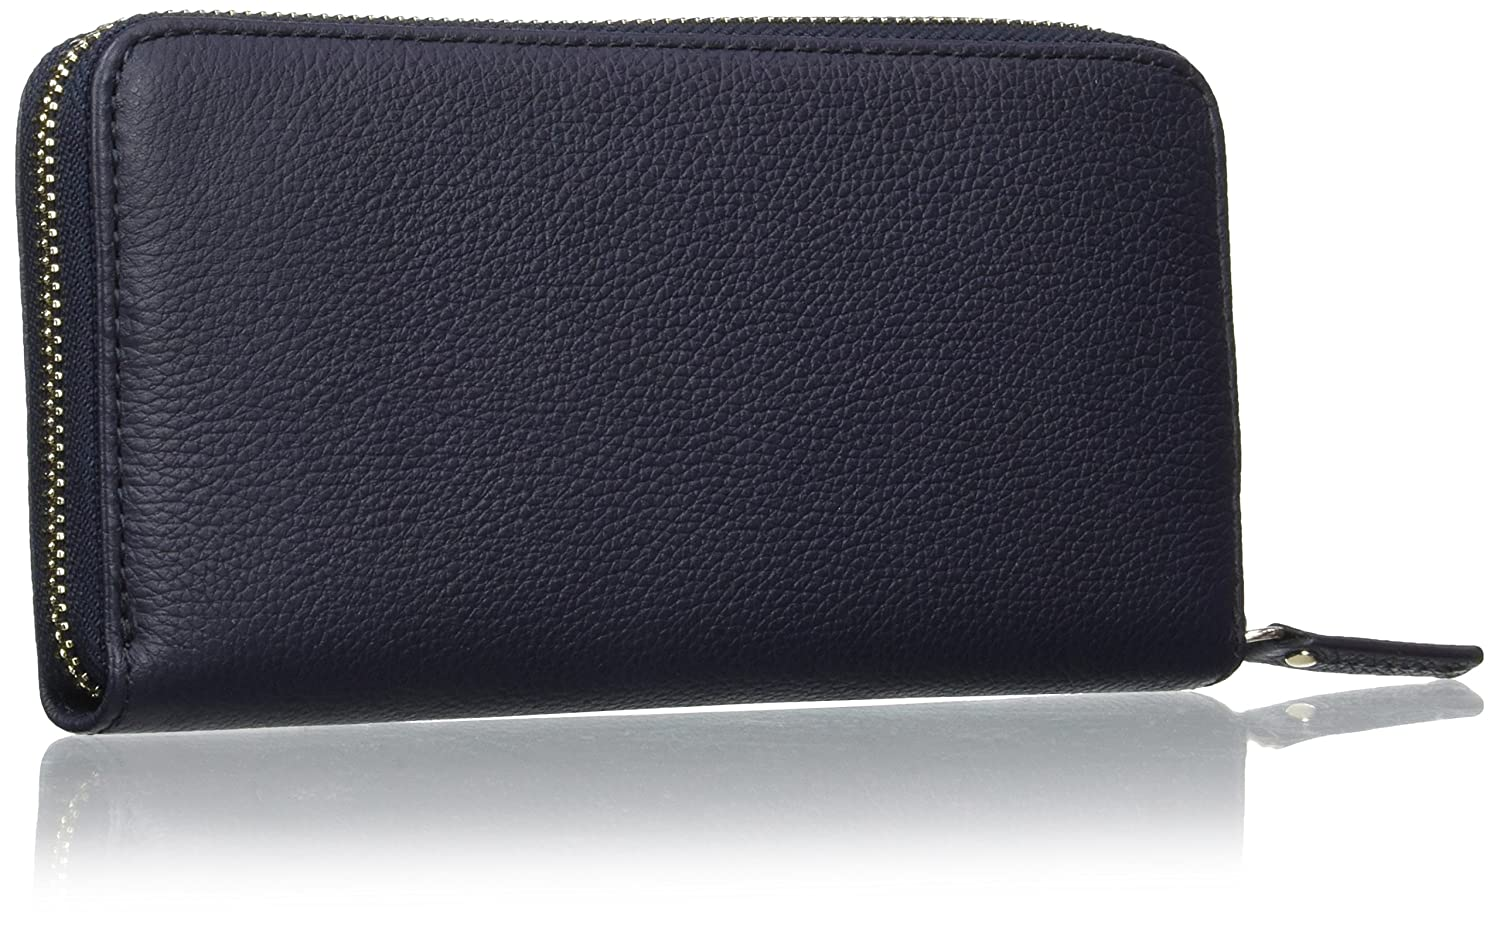 Amazon.com: Tommy Hilfiger Womens Basic Leather Large Za Wallet Wallet Blue (Tommy Navy): Shoes